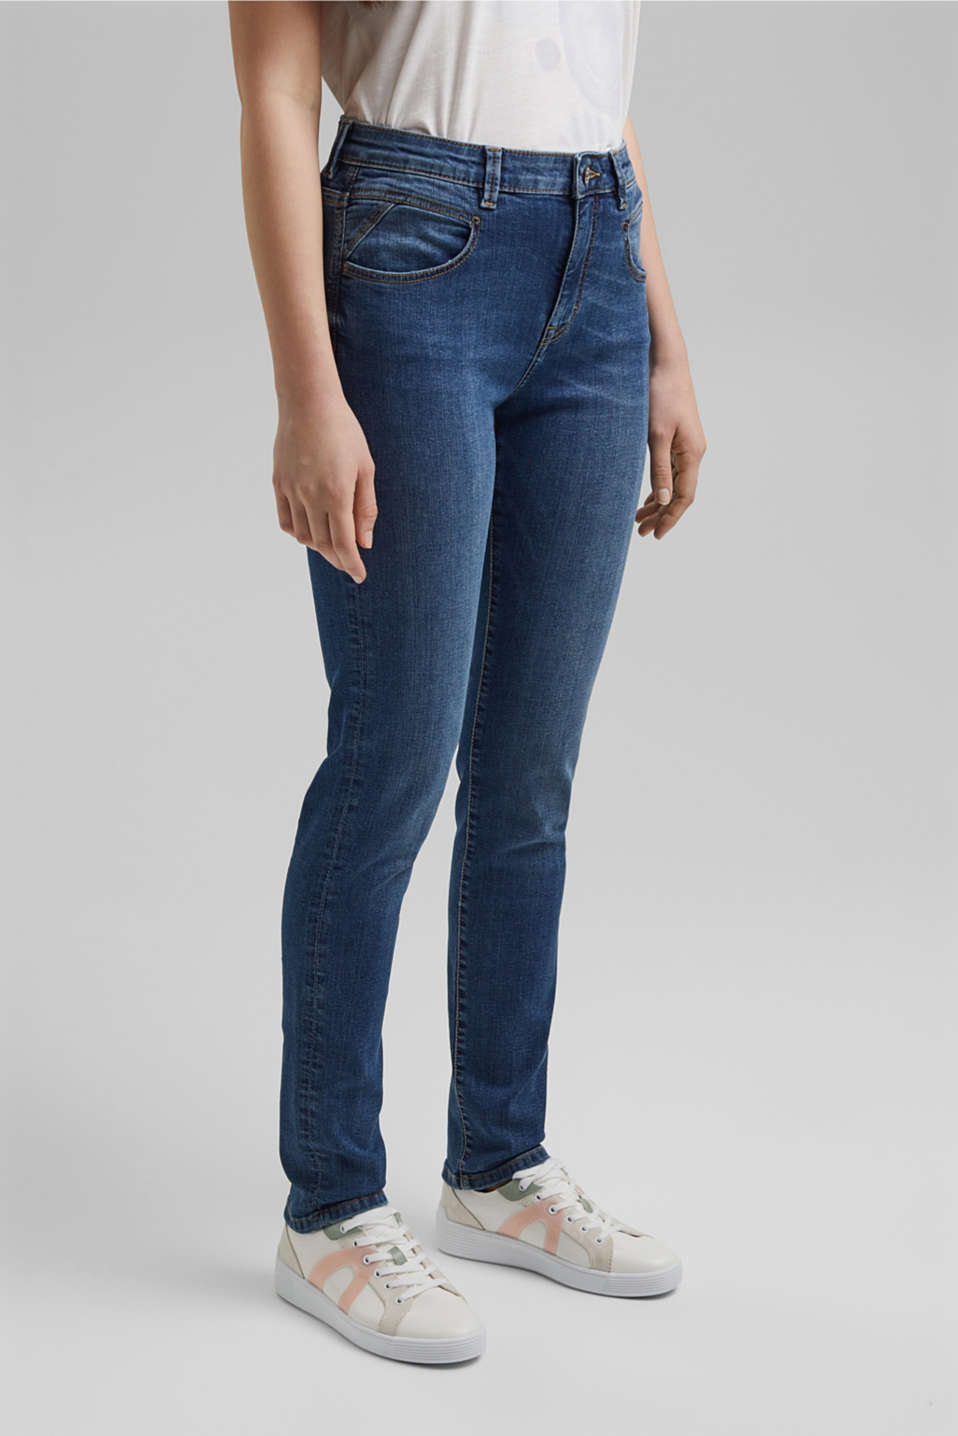 Esprit - Stretch jeans with a washed effects